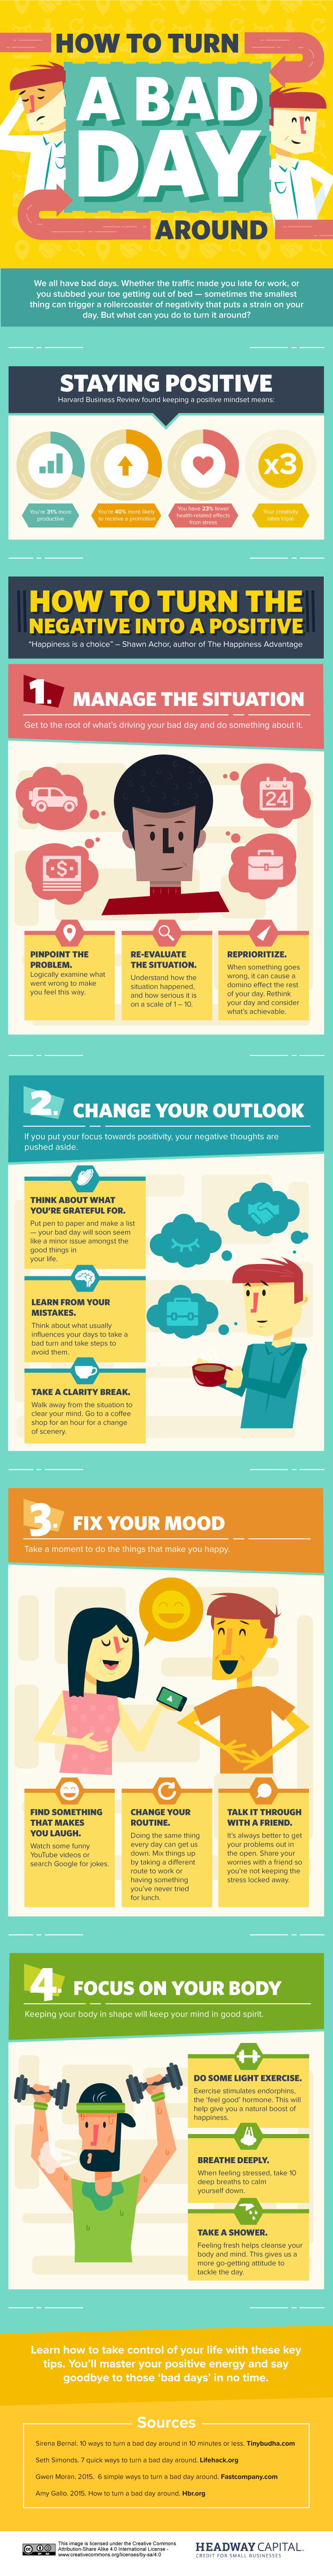 A Guide On Turning a Bad Day Into a Good One - Infographic